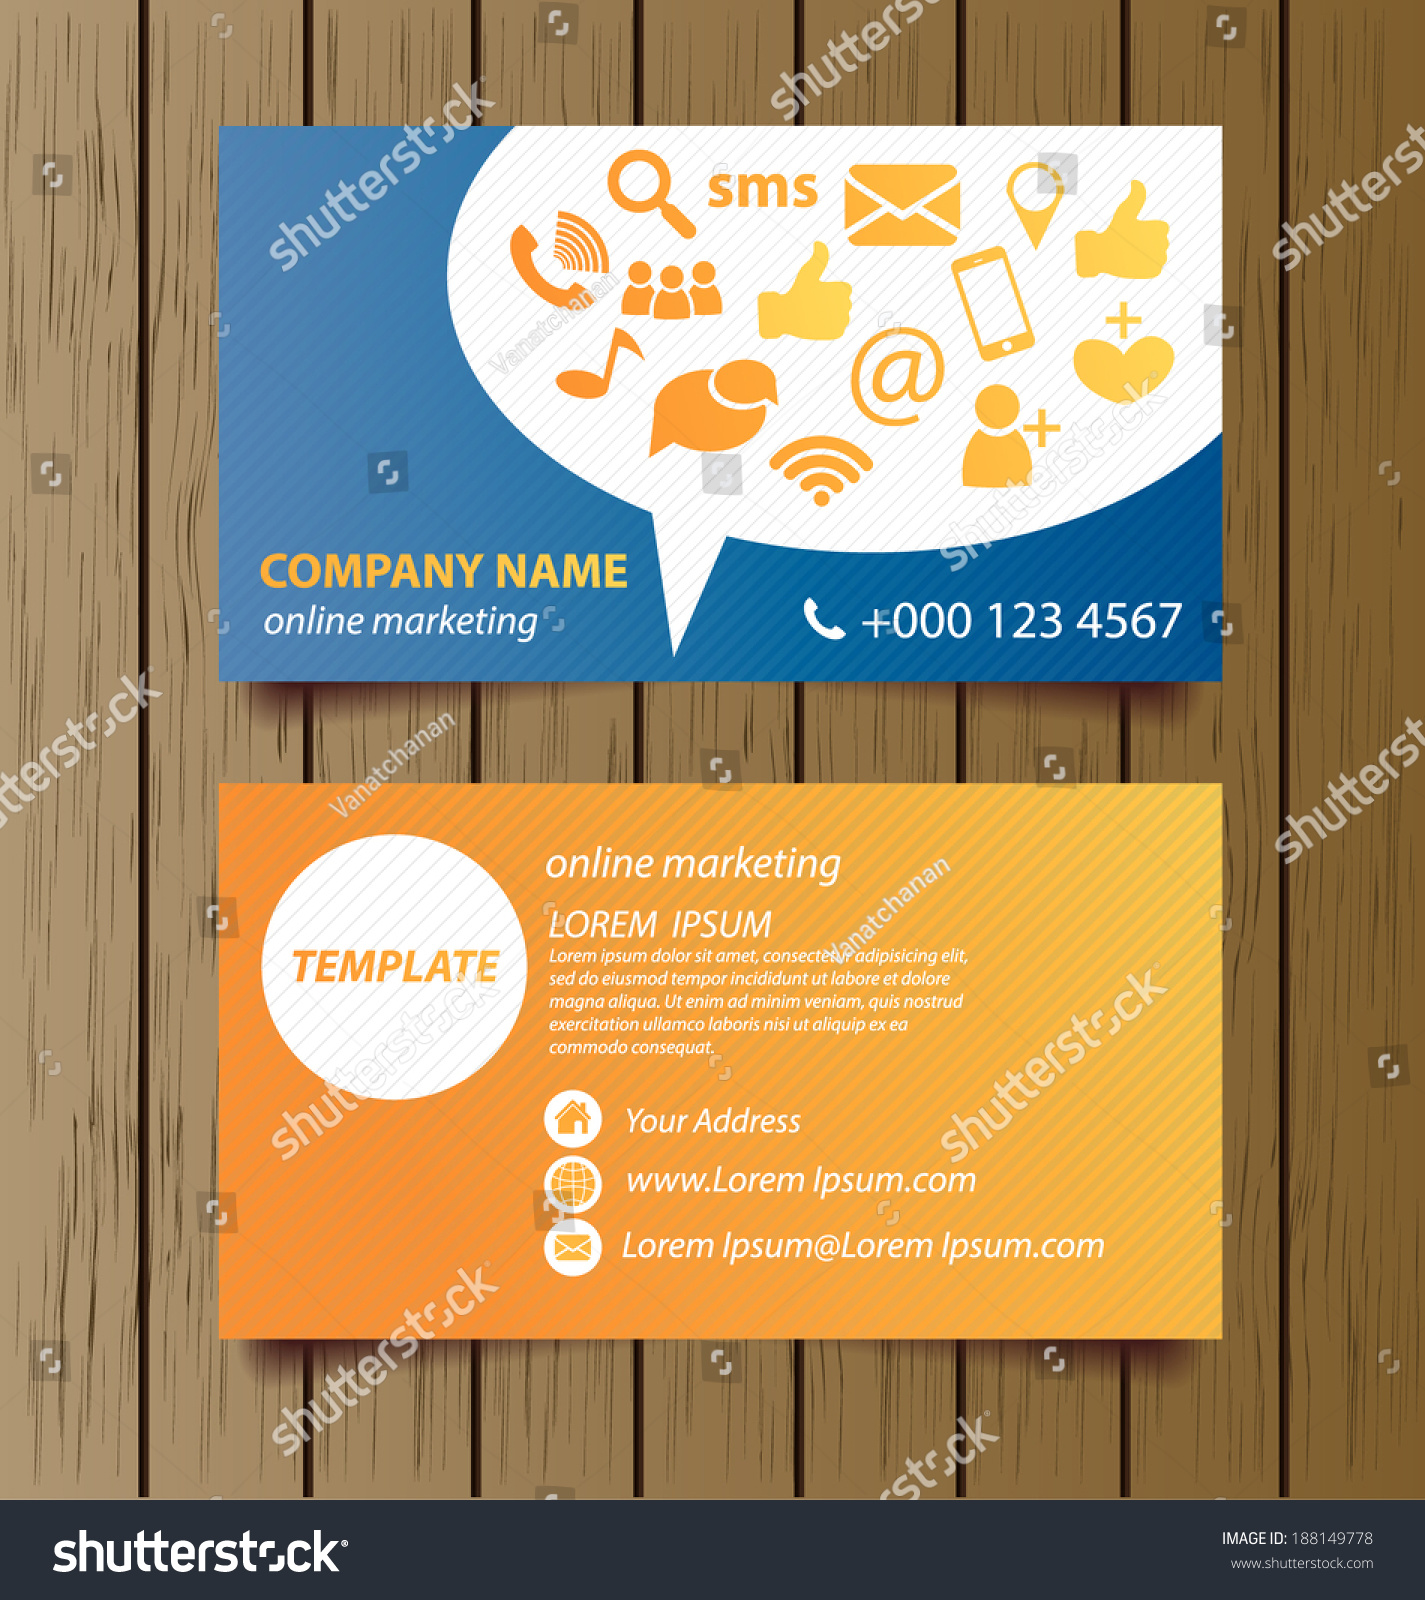 Business card template online marketing vector stock vector royalty business card template for online marketing vector illustration flashek Choice Image